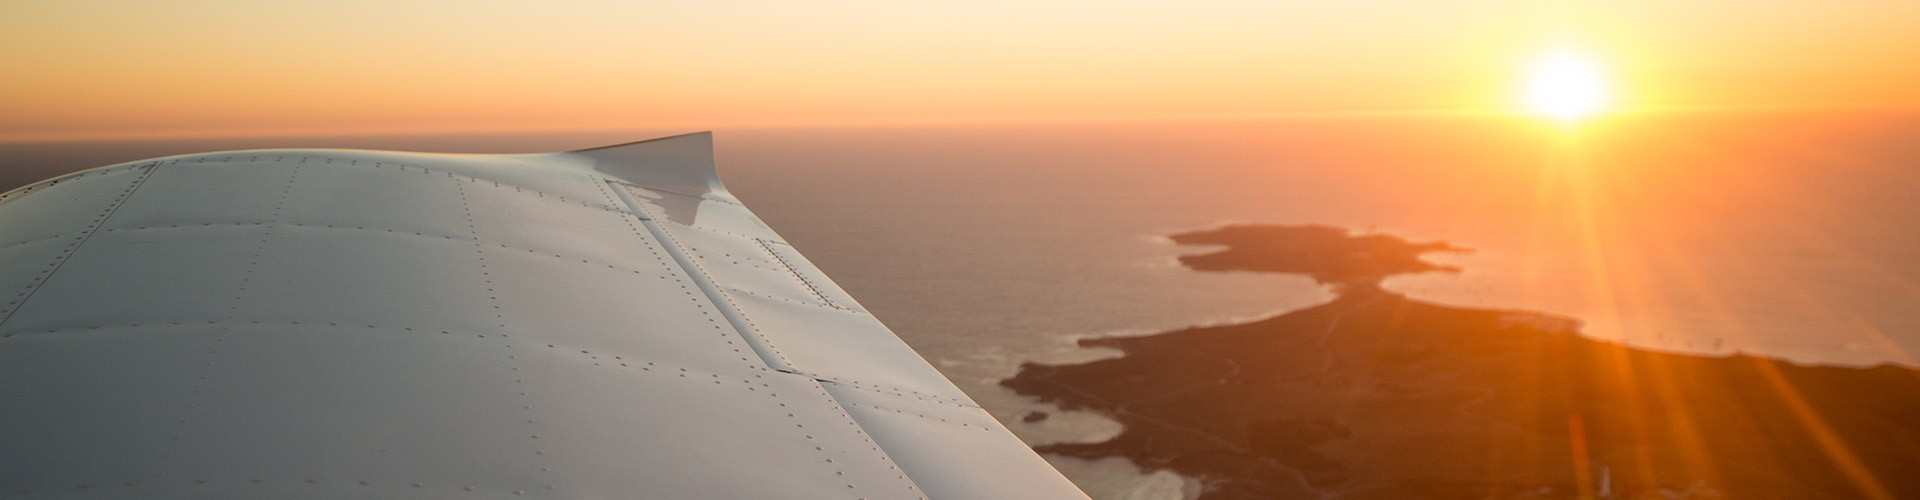 university-flying-club-rottnest-island-afternoon-ocean-sky-sun-flying